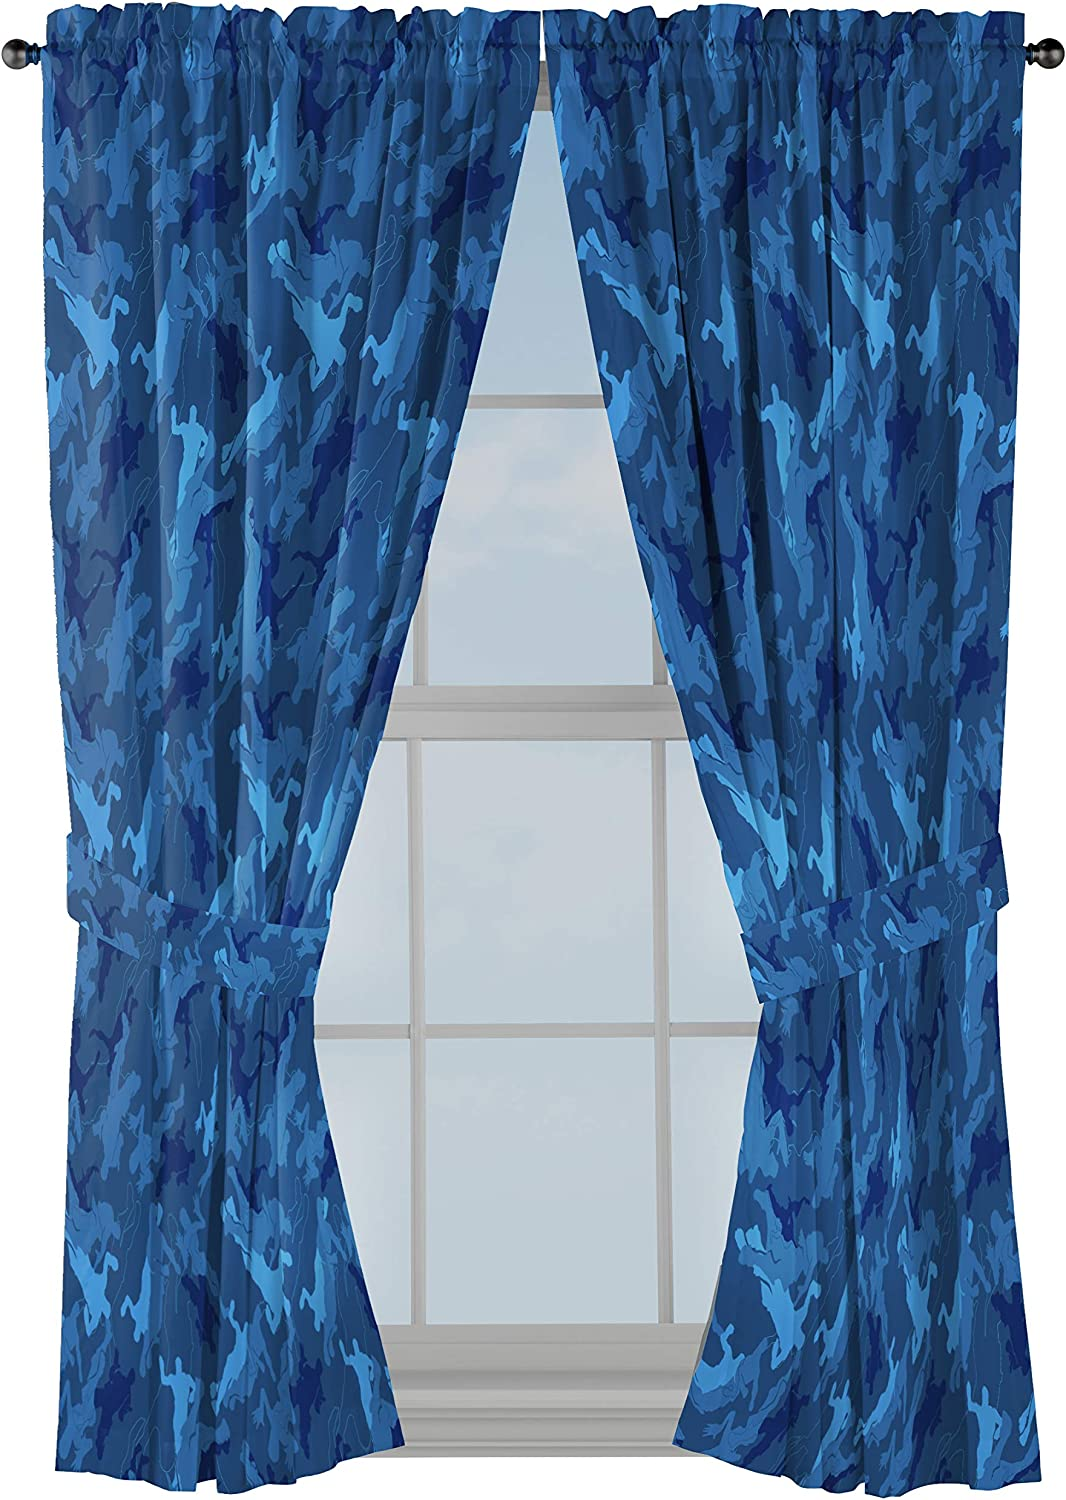 "Jay Franco Fortnite Emote Camo 63"" inch Drapes - Beautiful Room Décor & Easy Set Up, Bedding - Curtains Include 2 Tiebacks, 4 Piece Set (Official Fortnite Product)"